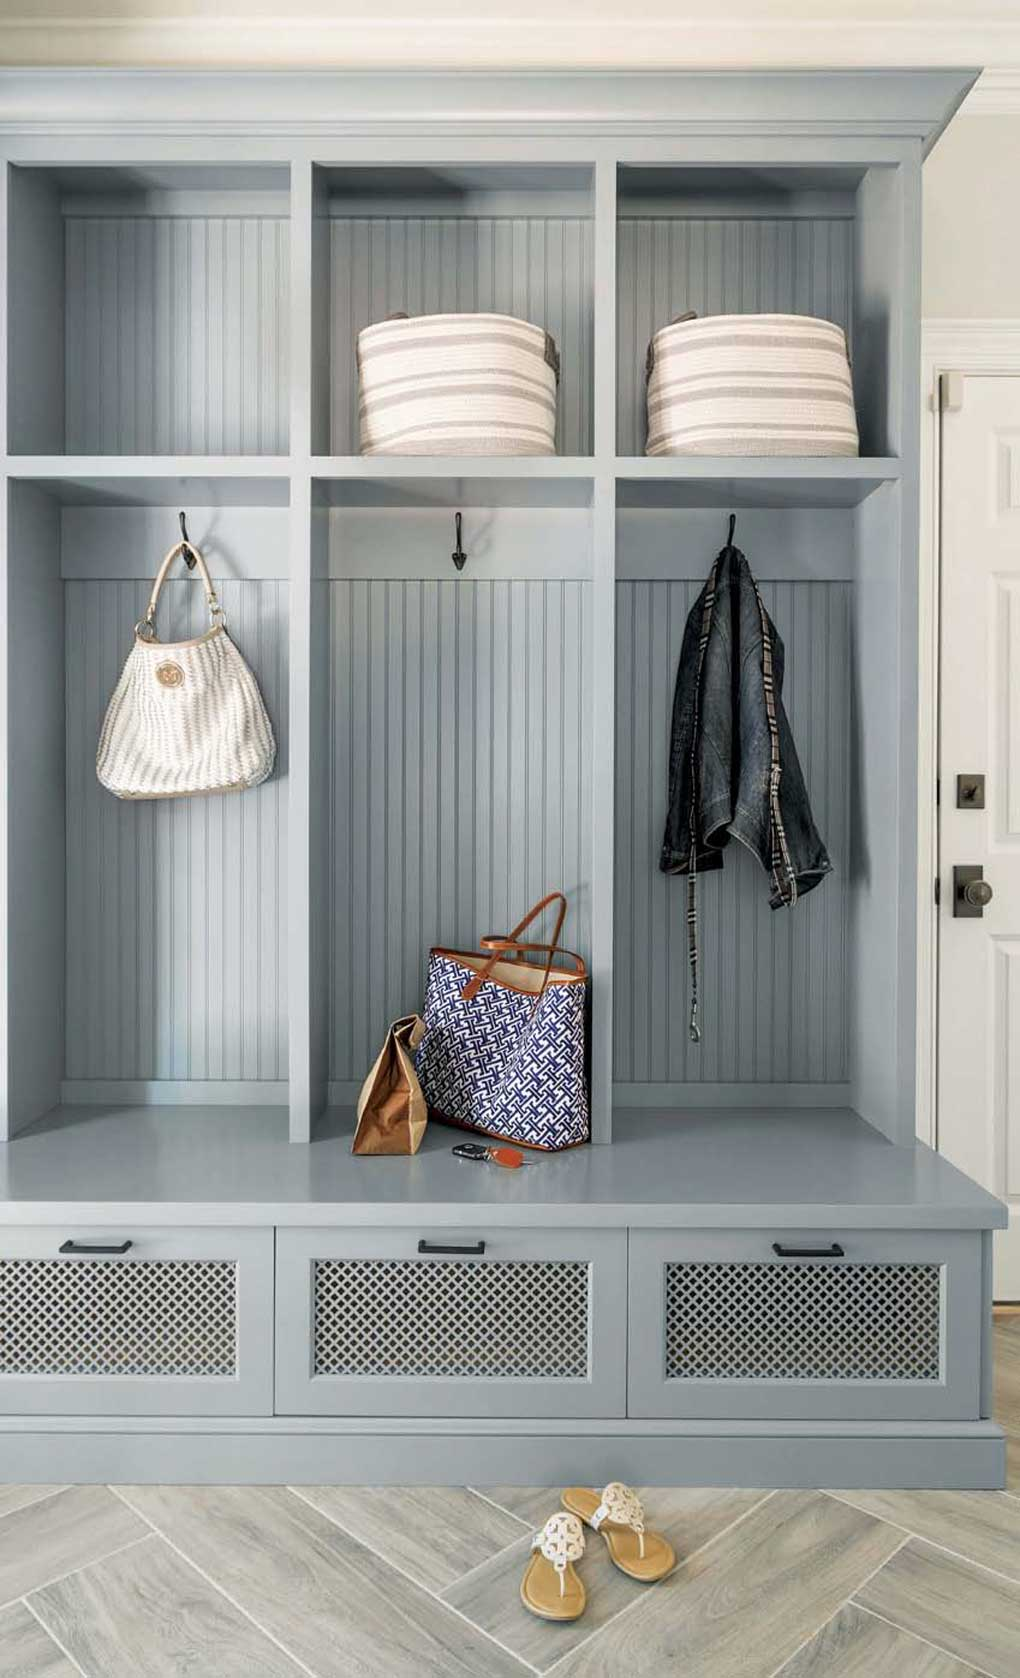 Gray blue colored builtin mudroom renovation with three separate personal spaces for folded, hanging and drawer items.